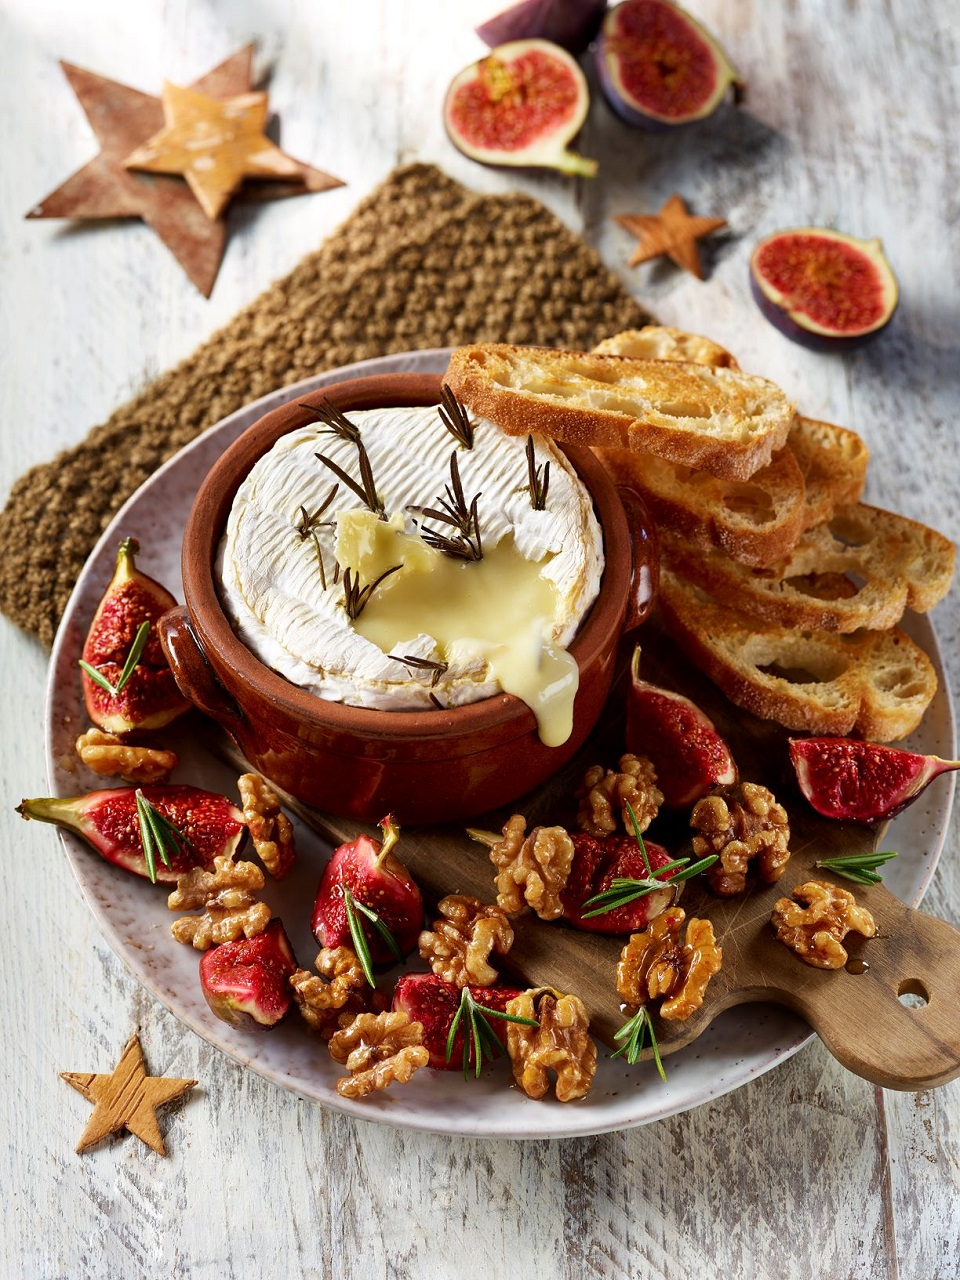 Baked Figs, California Walnuts And Camembert